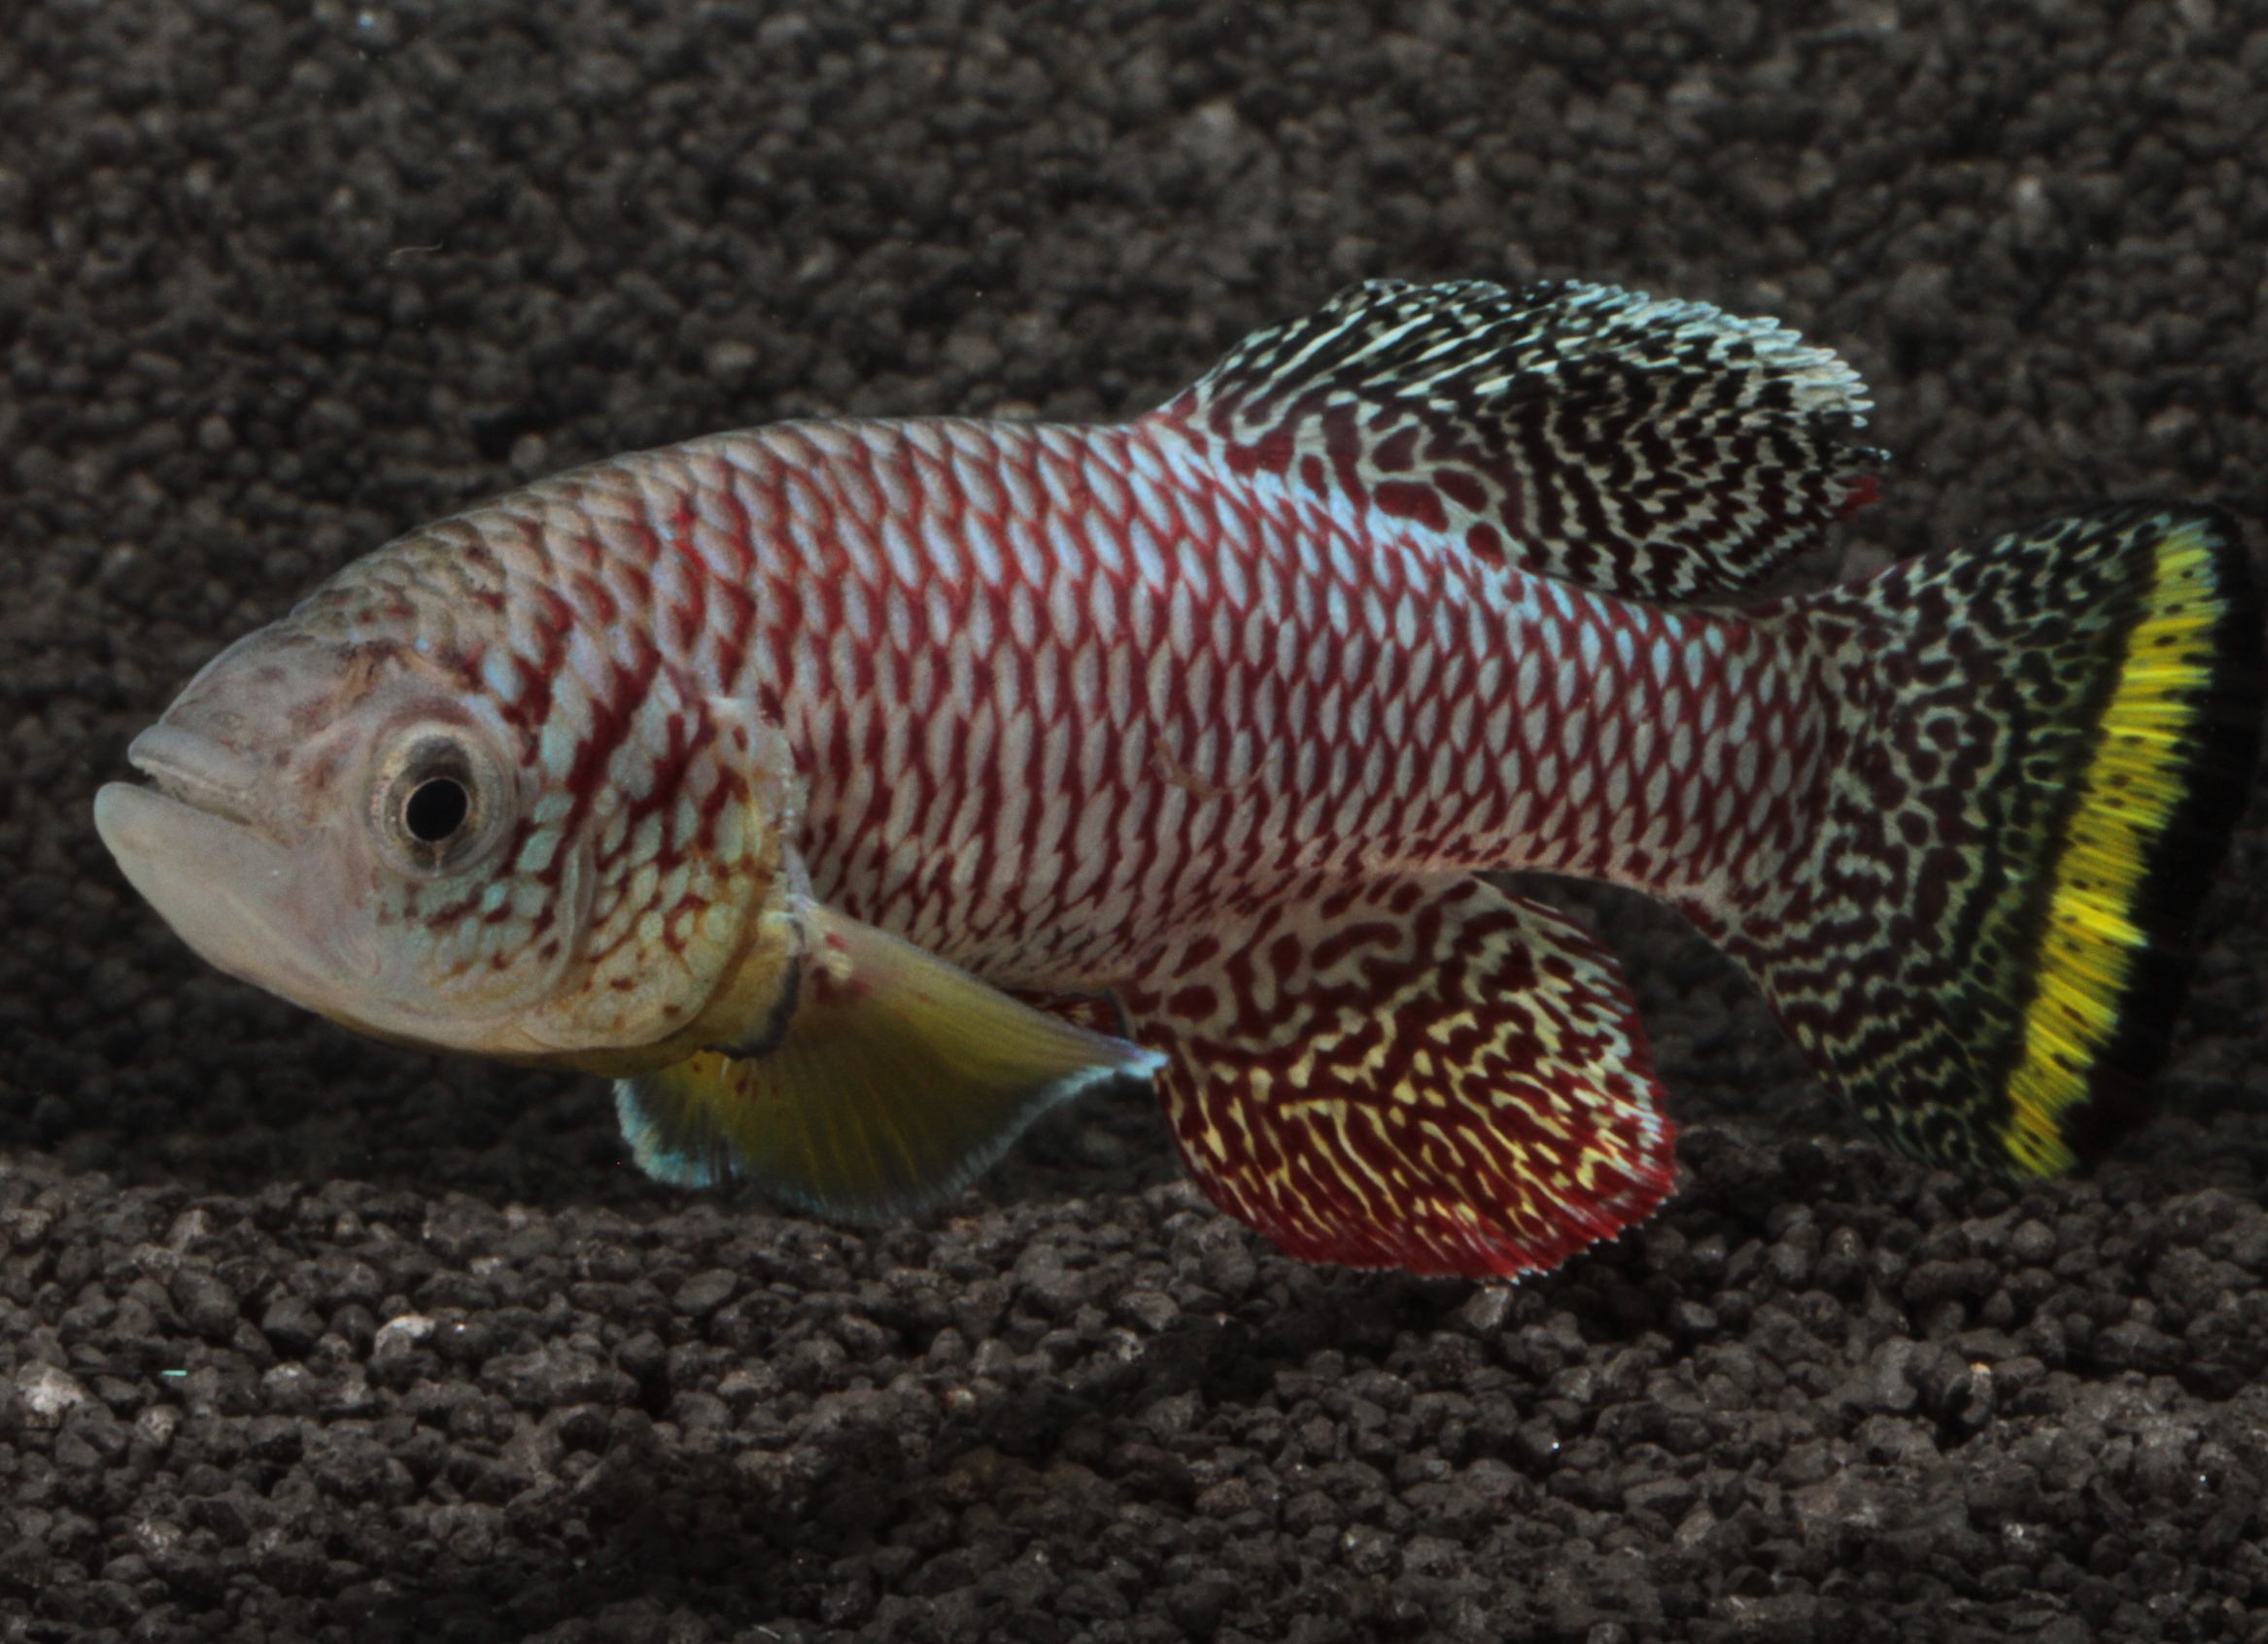 Researchers have discovered that the African killifish is the fastest maturing vertebrae on the planet, reaching its full size in two weeks.